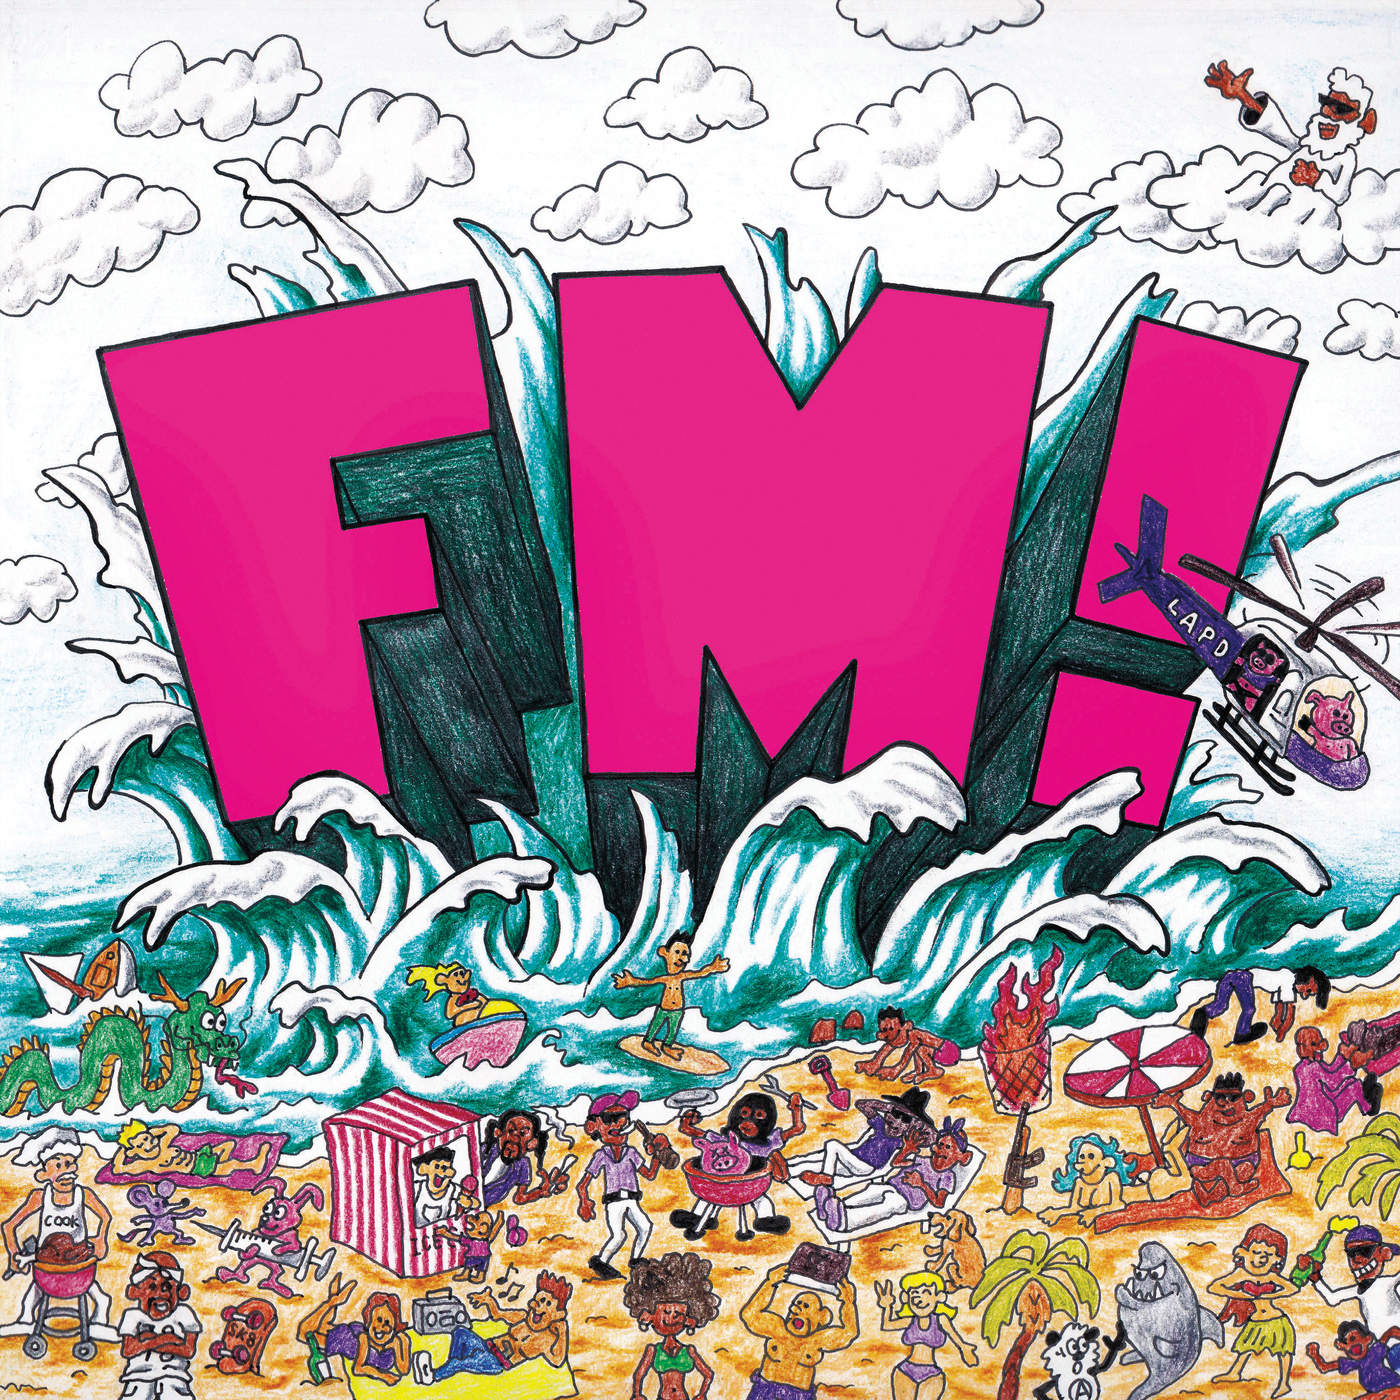 Vince Staples' FM! features Kamaiyah, Earl Sweatshirt and more